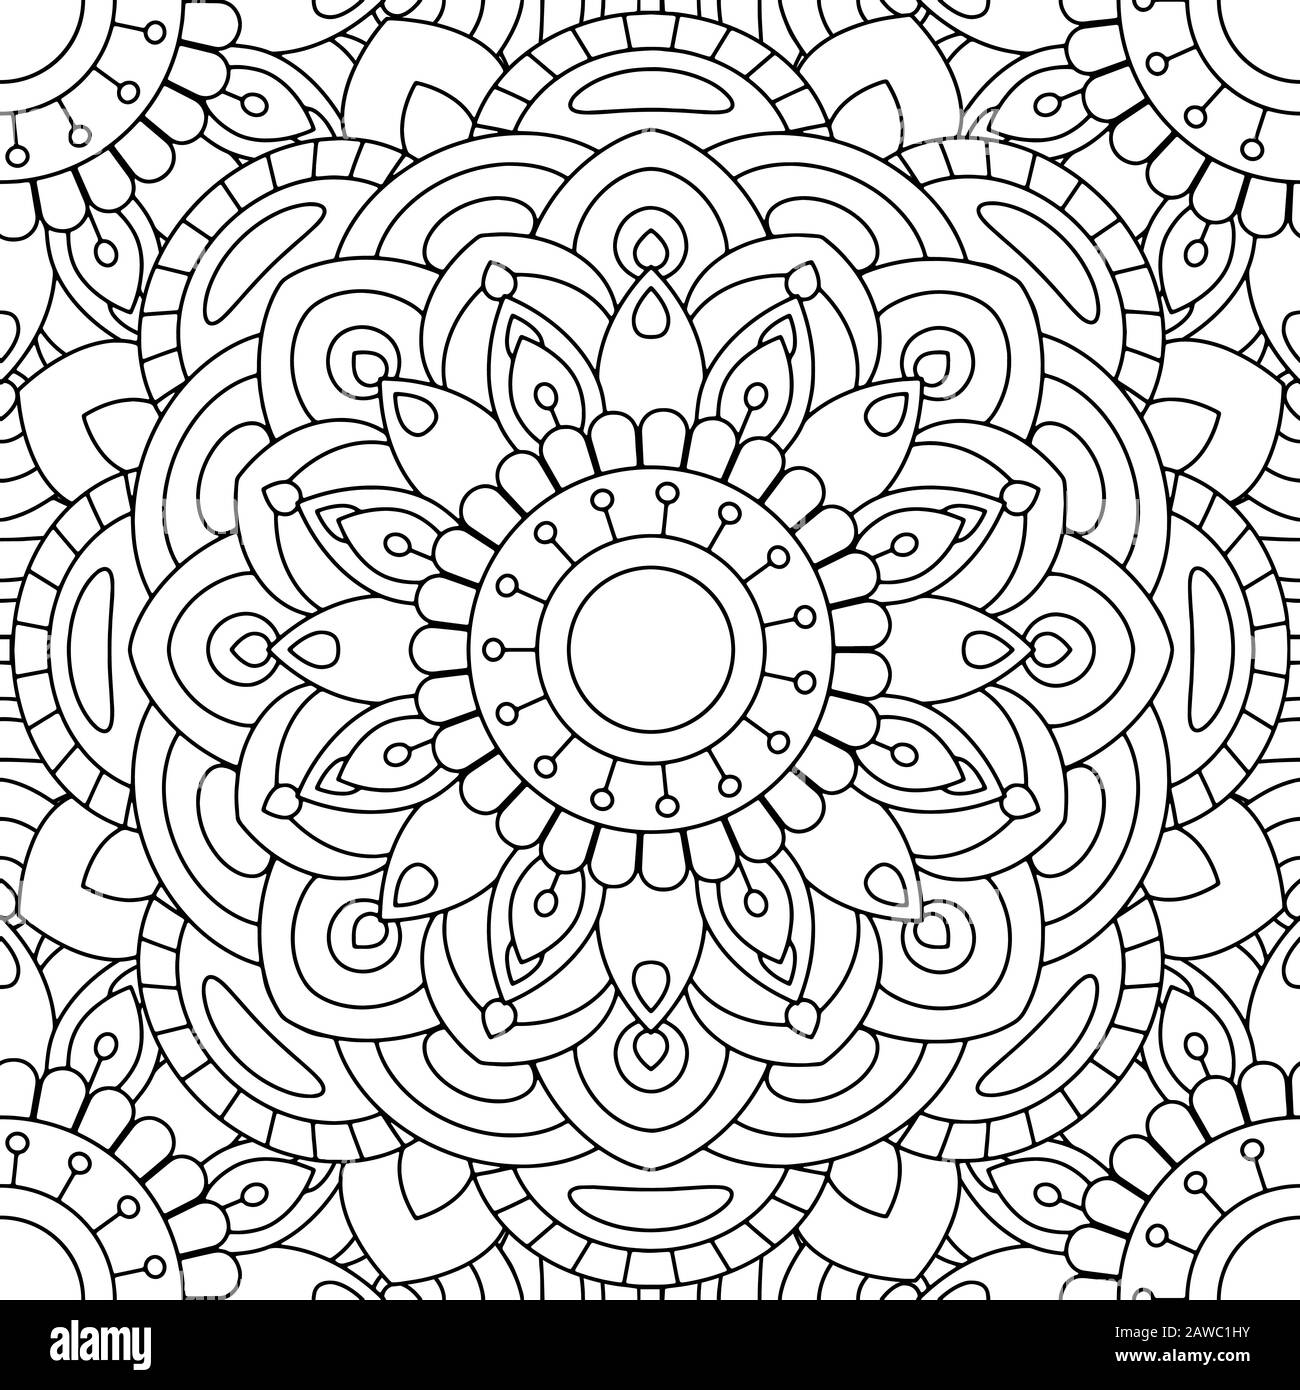 Triangles traits - Image with : Geometry, TriangleFrom the gallery : Zen | Pattern  coloring pages, Stress coloring, Antistress coloring | 1390x1300